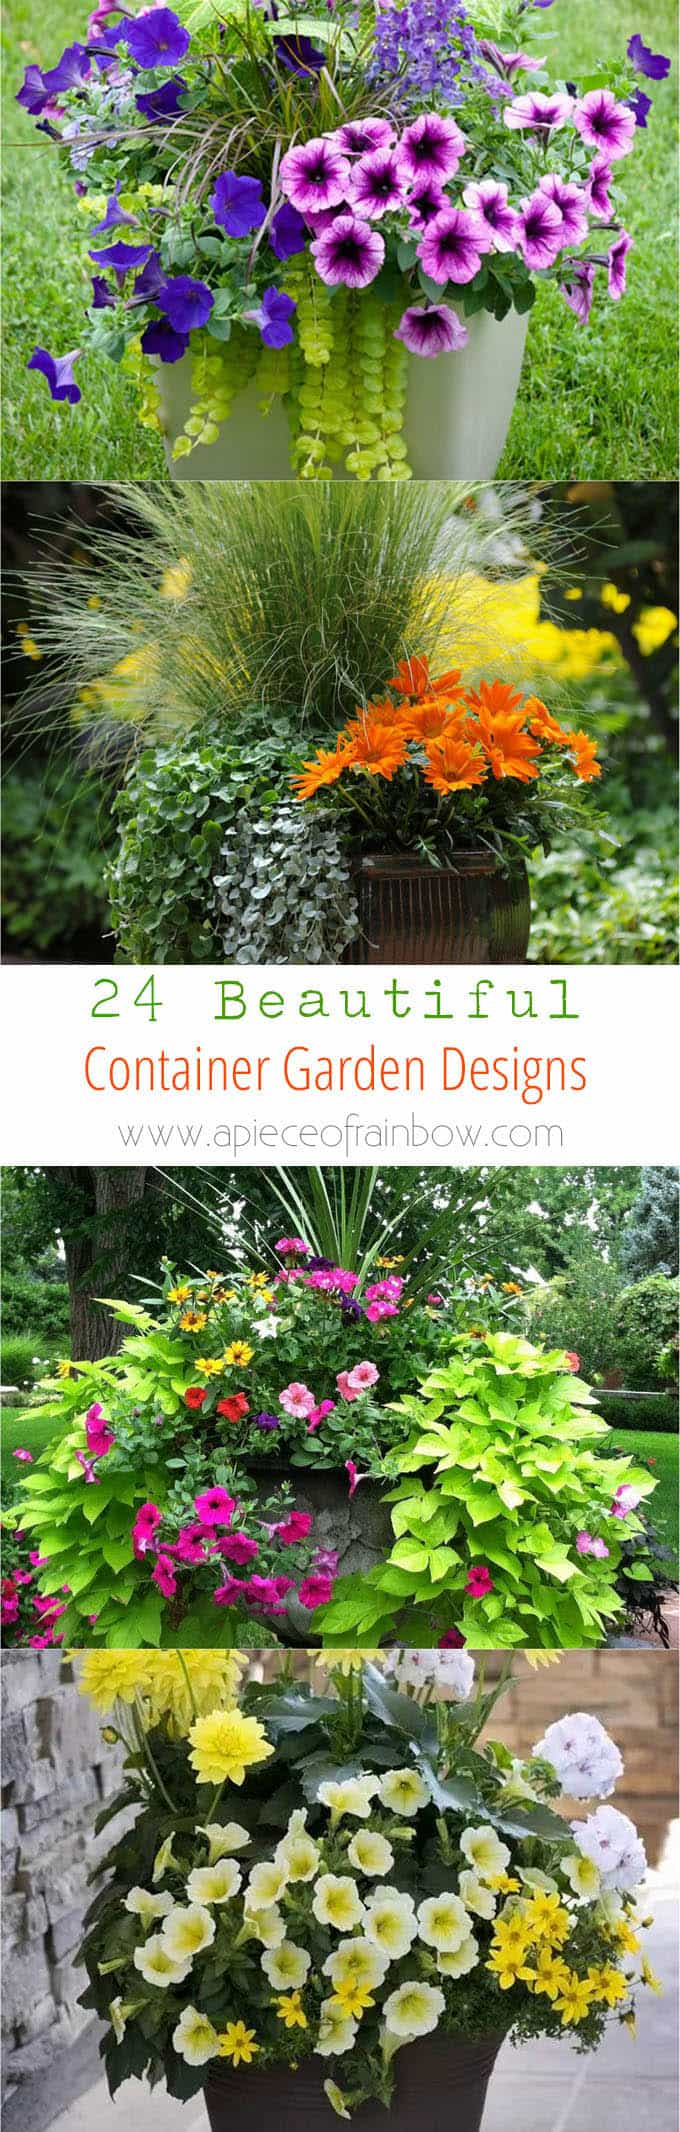 The Best Part Is: We Can Recreate Each Of These Stunning Container Garden  Designs. I Am Going To Share With You A Plant List For Each One Of These  Gorgeous ...